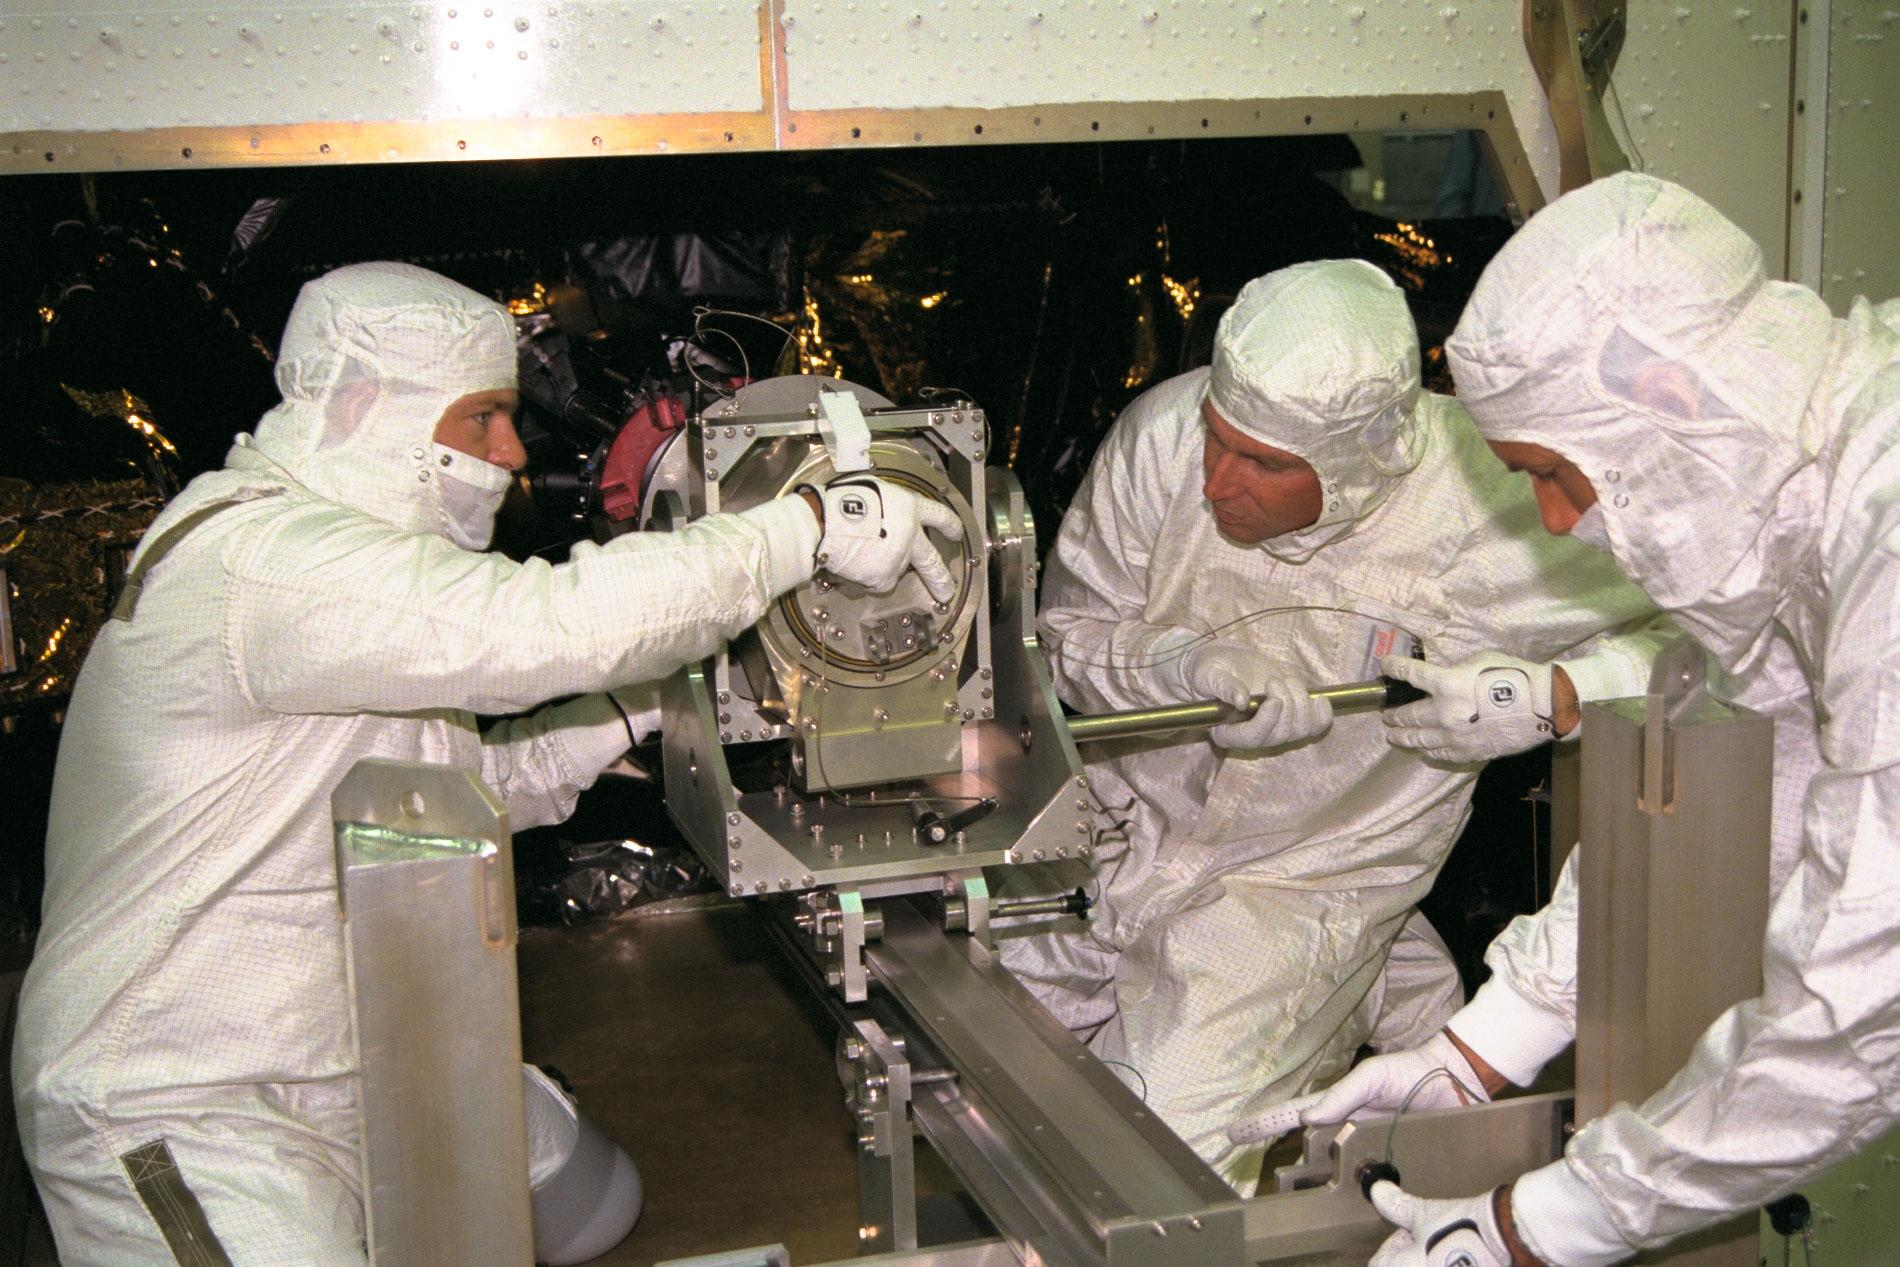 Three men install parts on a spacecraft.